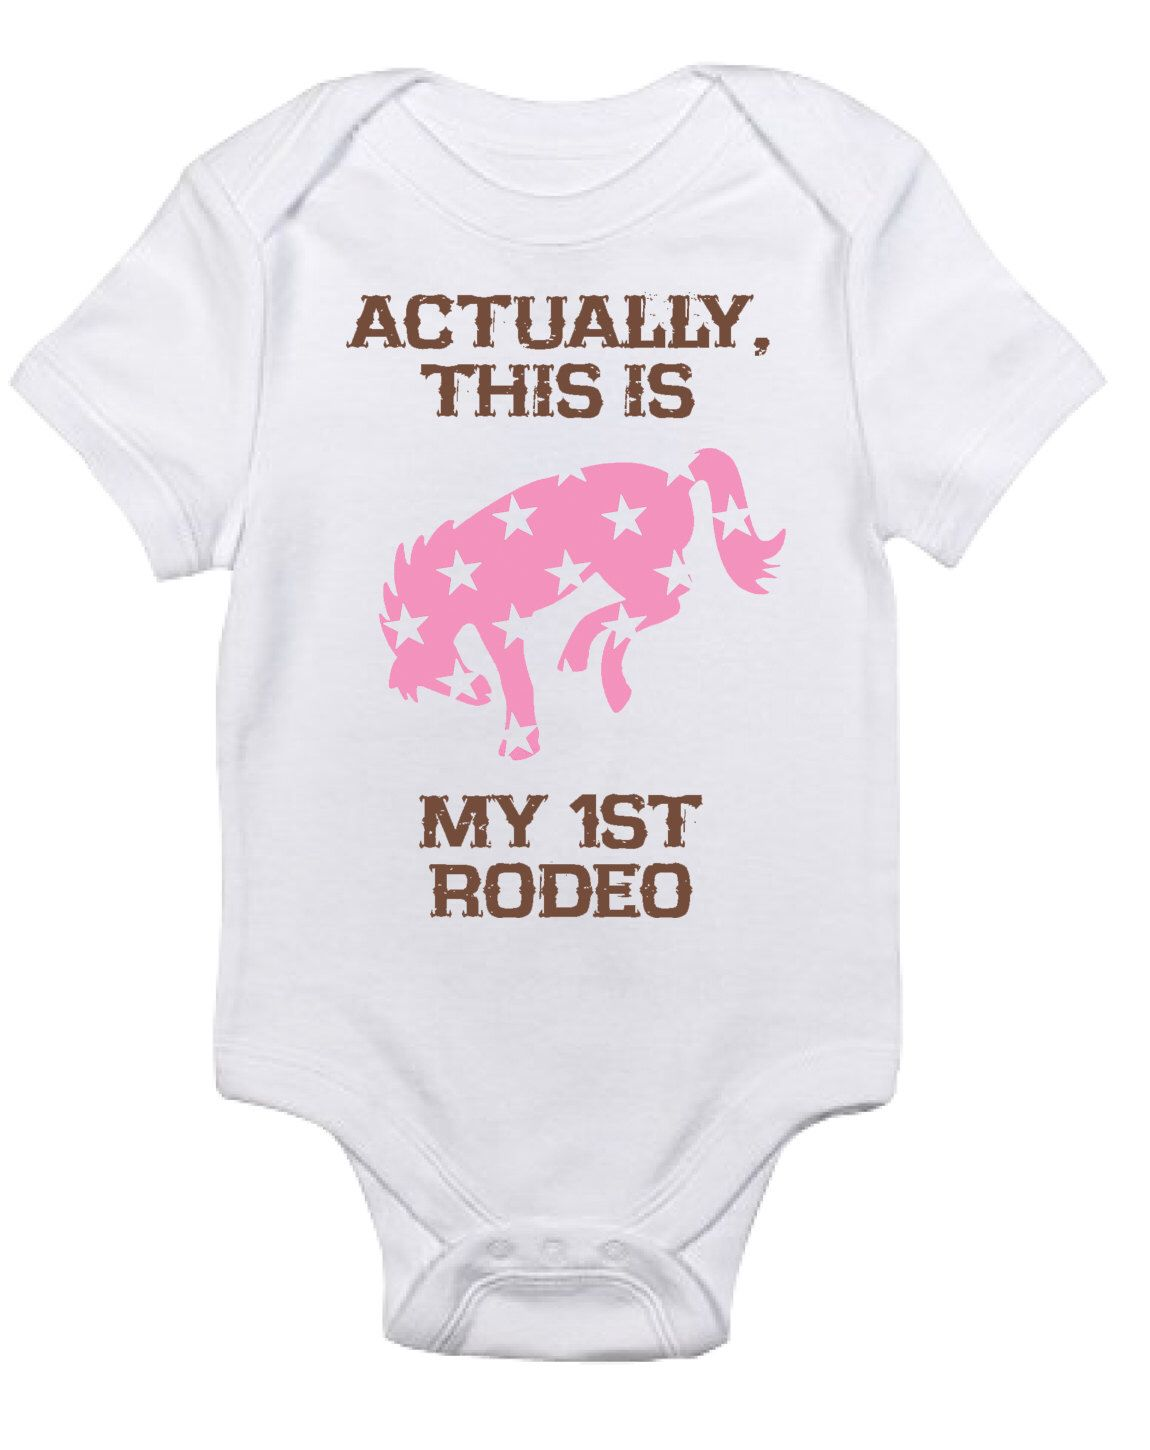 Short Sleeve Horse Bodysuit for Infant Boys Girls and Surprises Equestrian Creations This Baby Needs a Pony